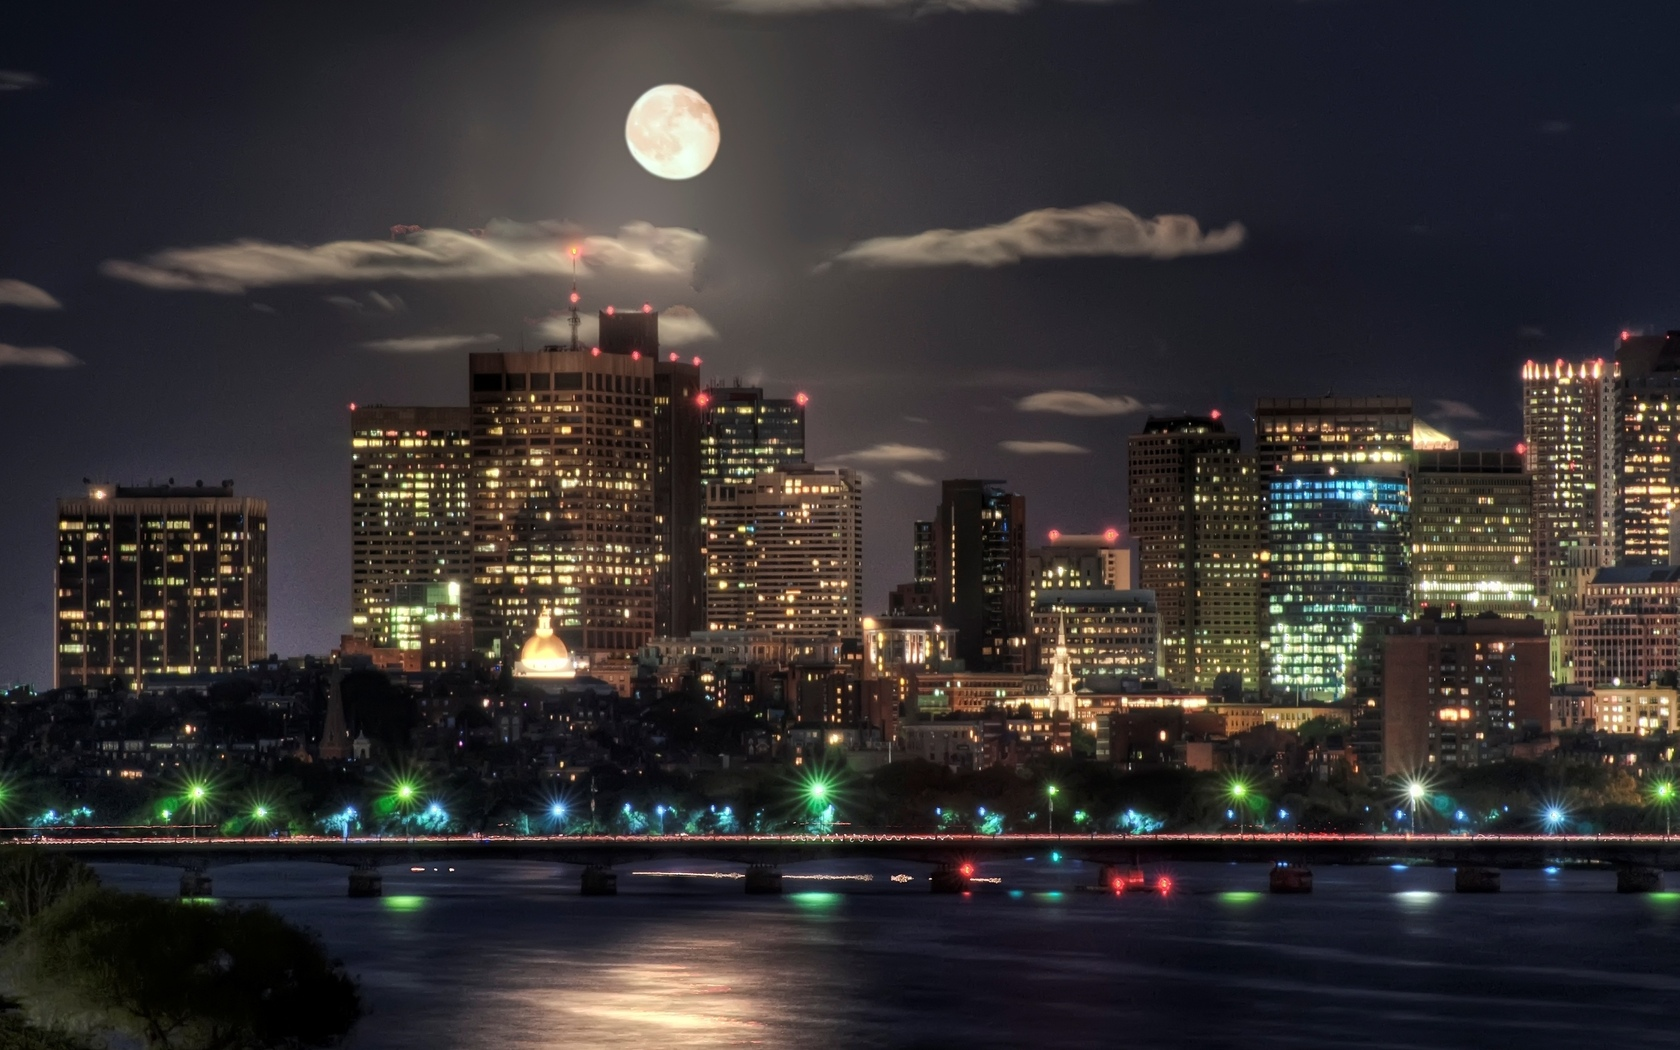 lights, night, moon, city